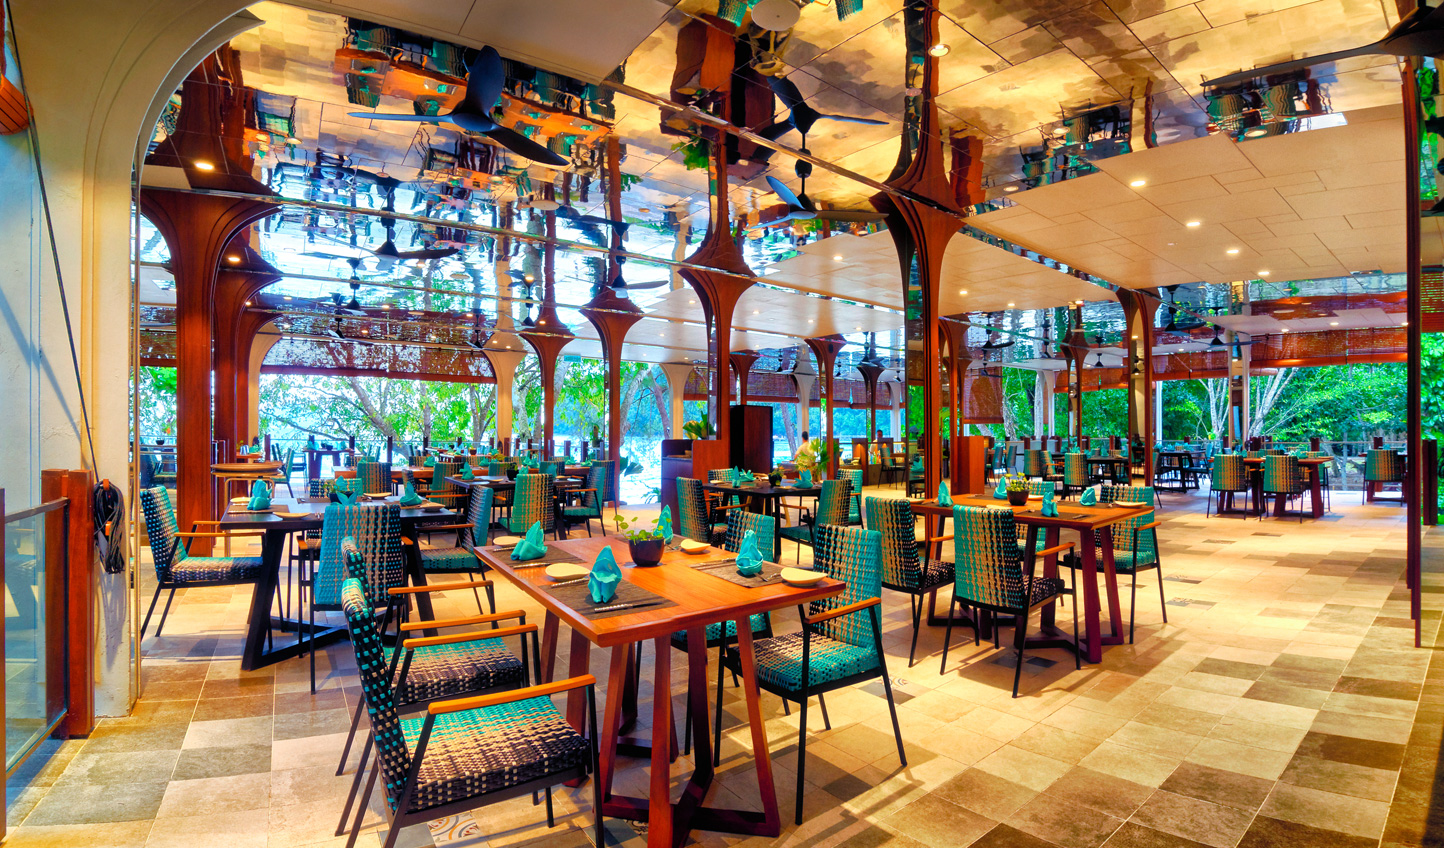 Indulge in some fresh seafood at Pantai Restaurant & Bar